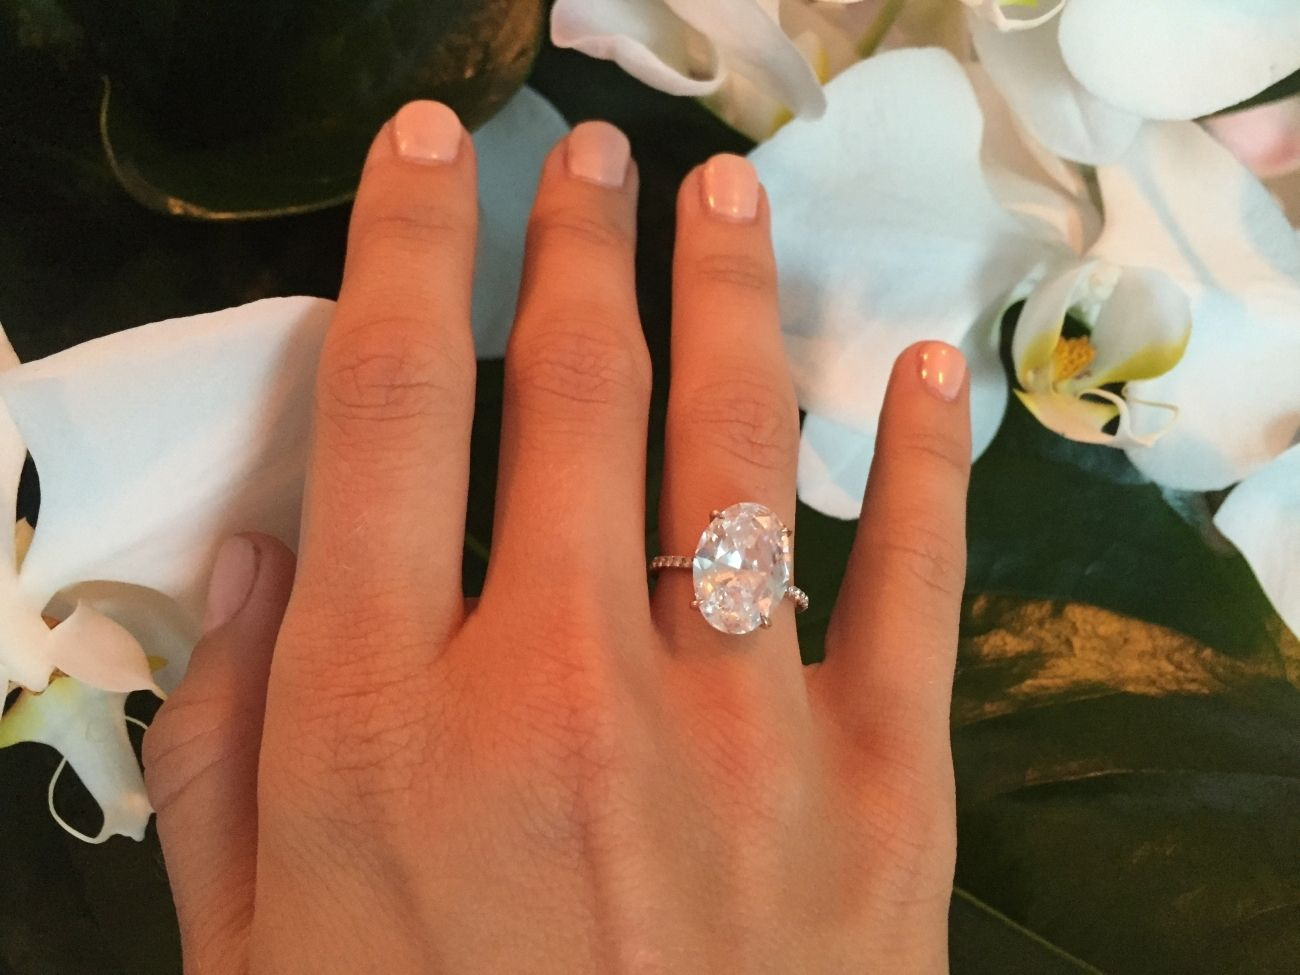 julianne hough engagement ring carats | Ring